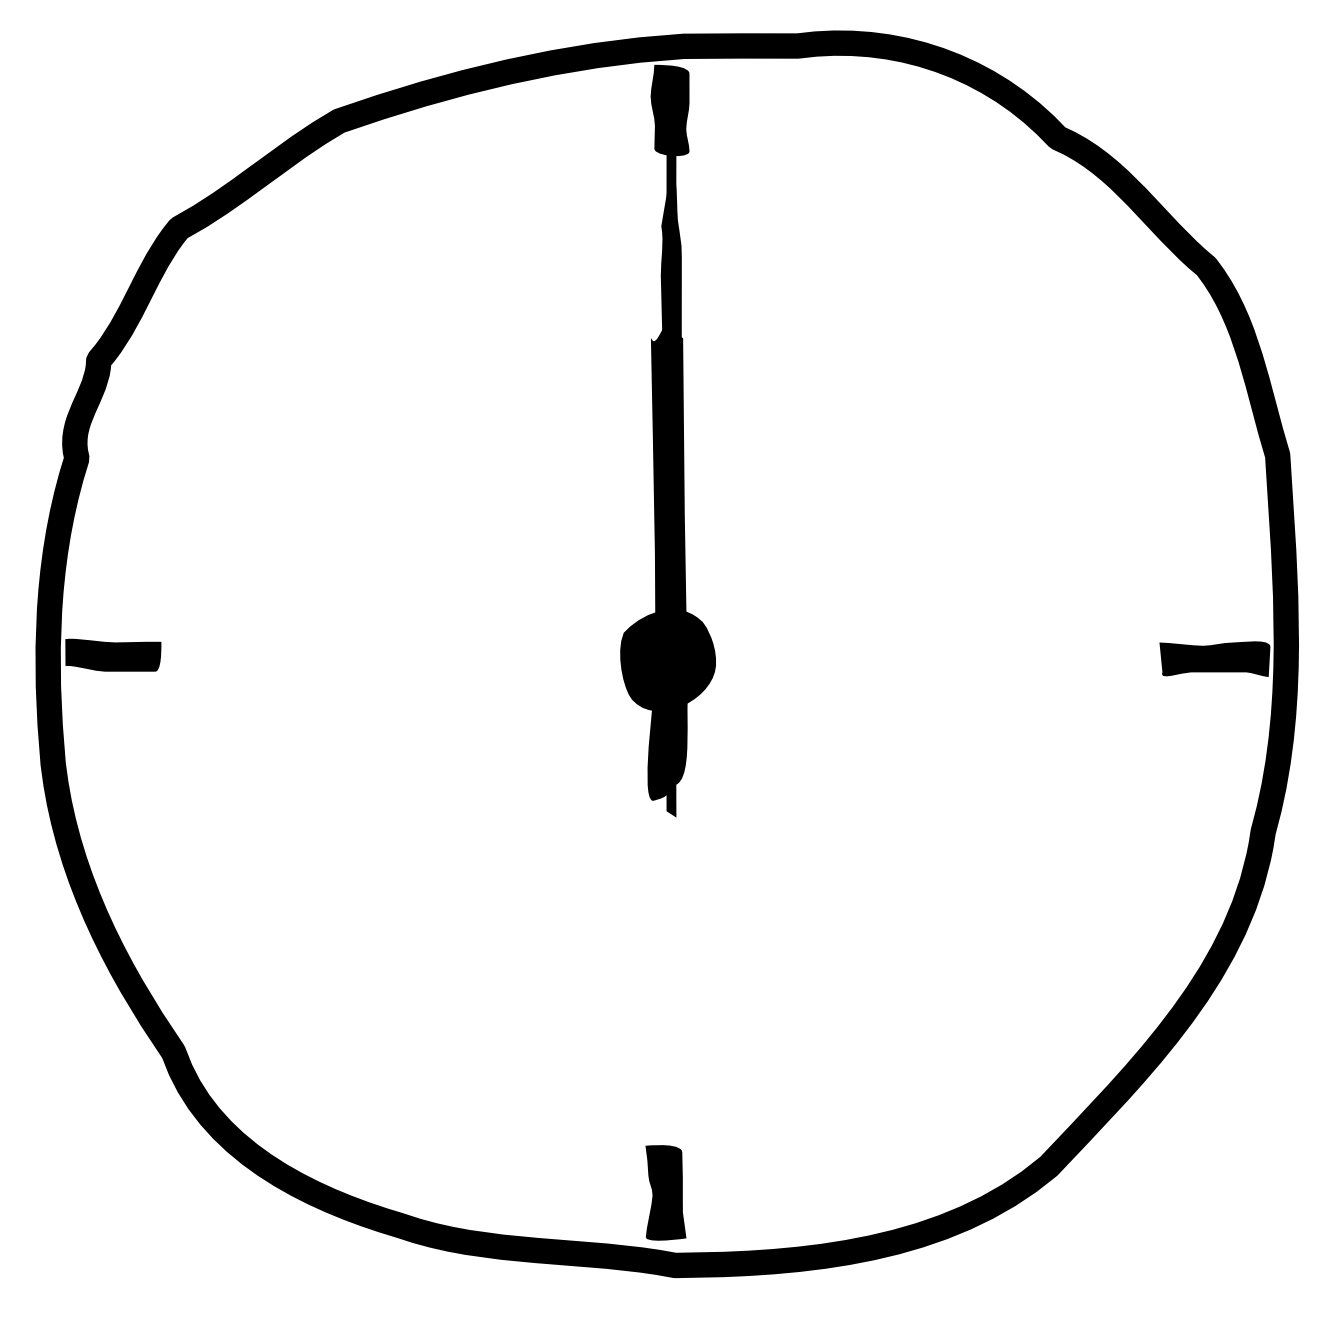 Stopwatch transparent blank. Png black and